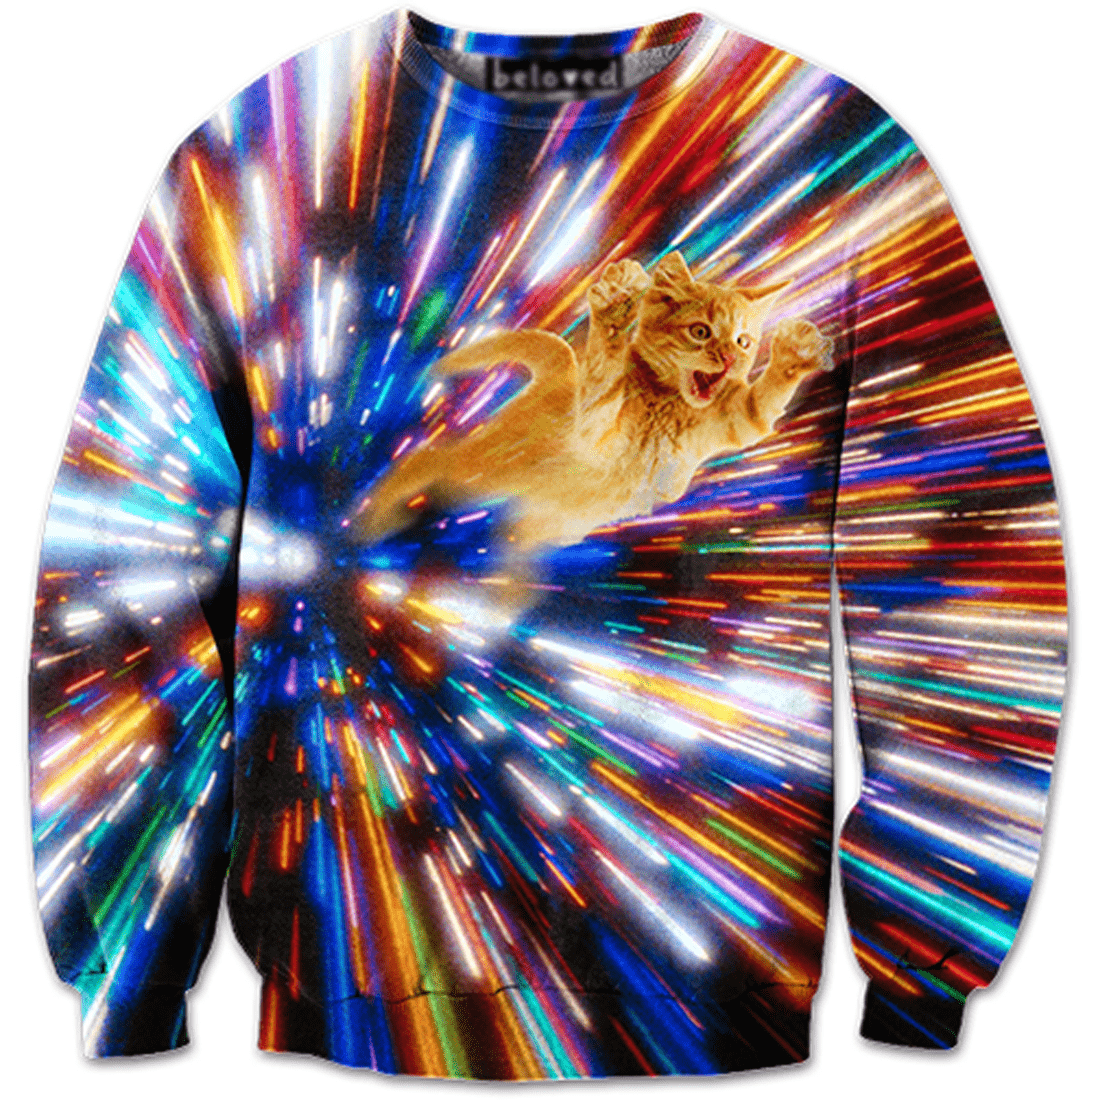 Psychedelic Vortex Kitty Cat Graphic Print Sweater in Rainbow Colors